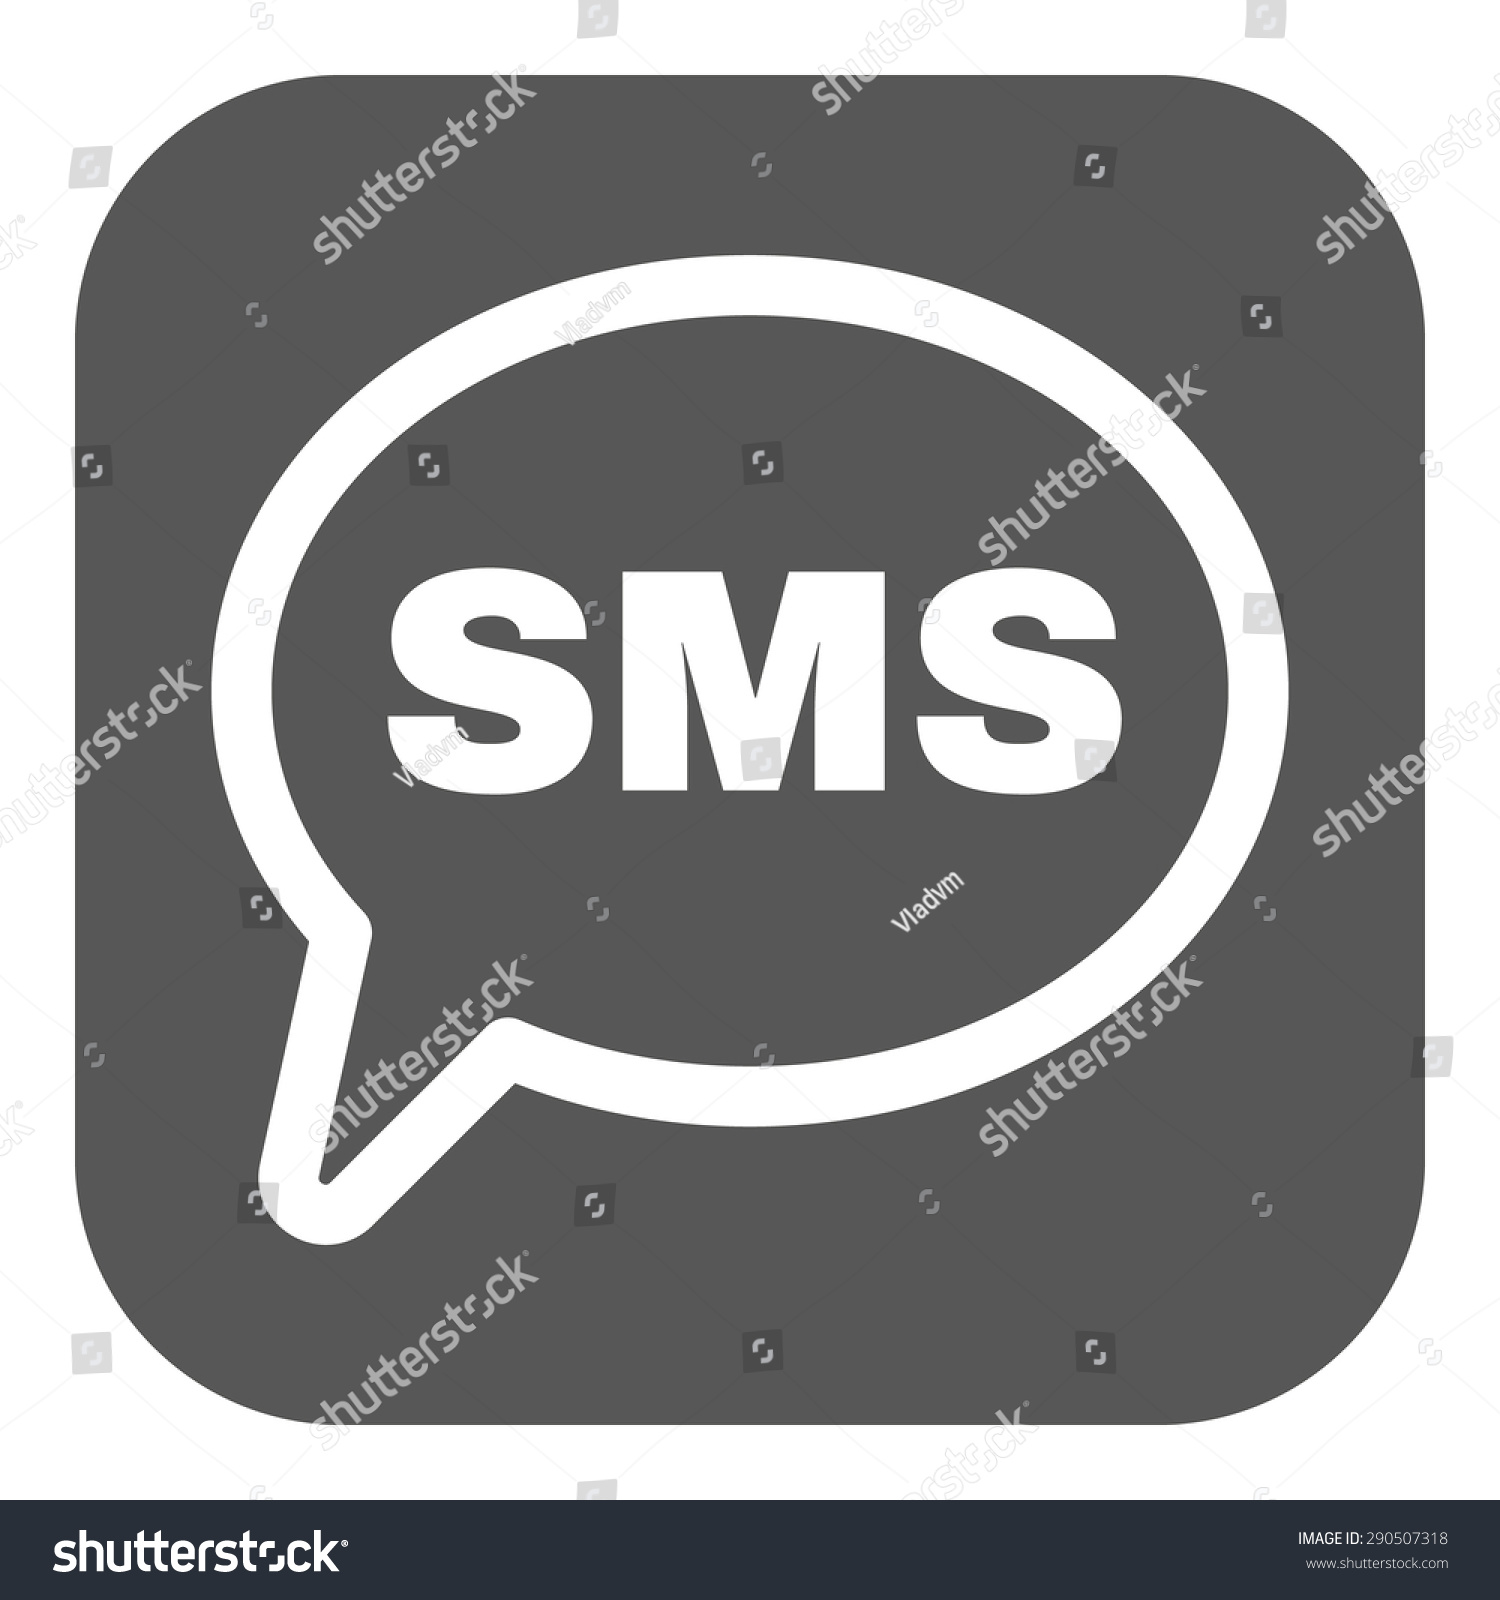 Sms icon text message symbol flat stock vector 290507318 the sms icon text message symbol flat vector illustration button biocorpaavc Images